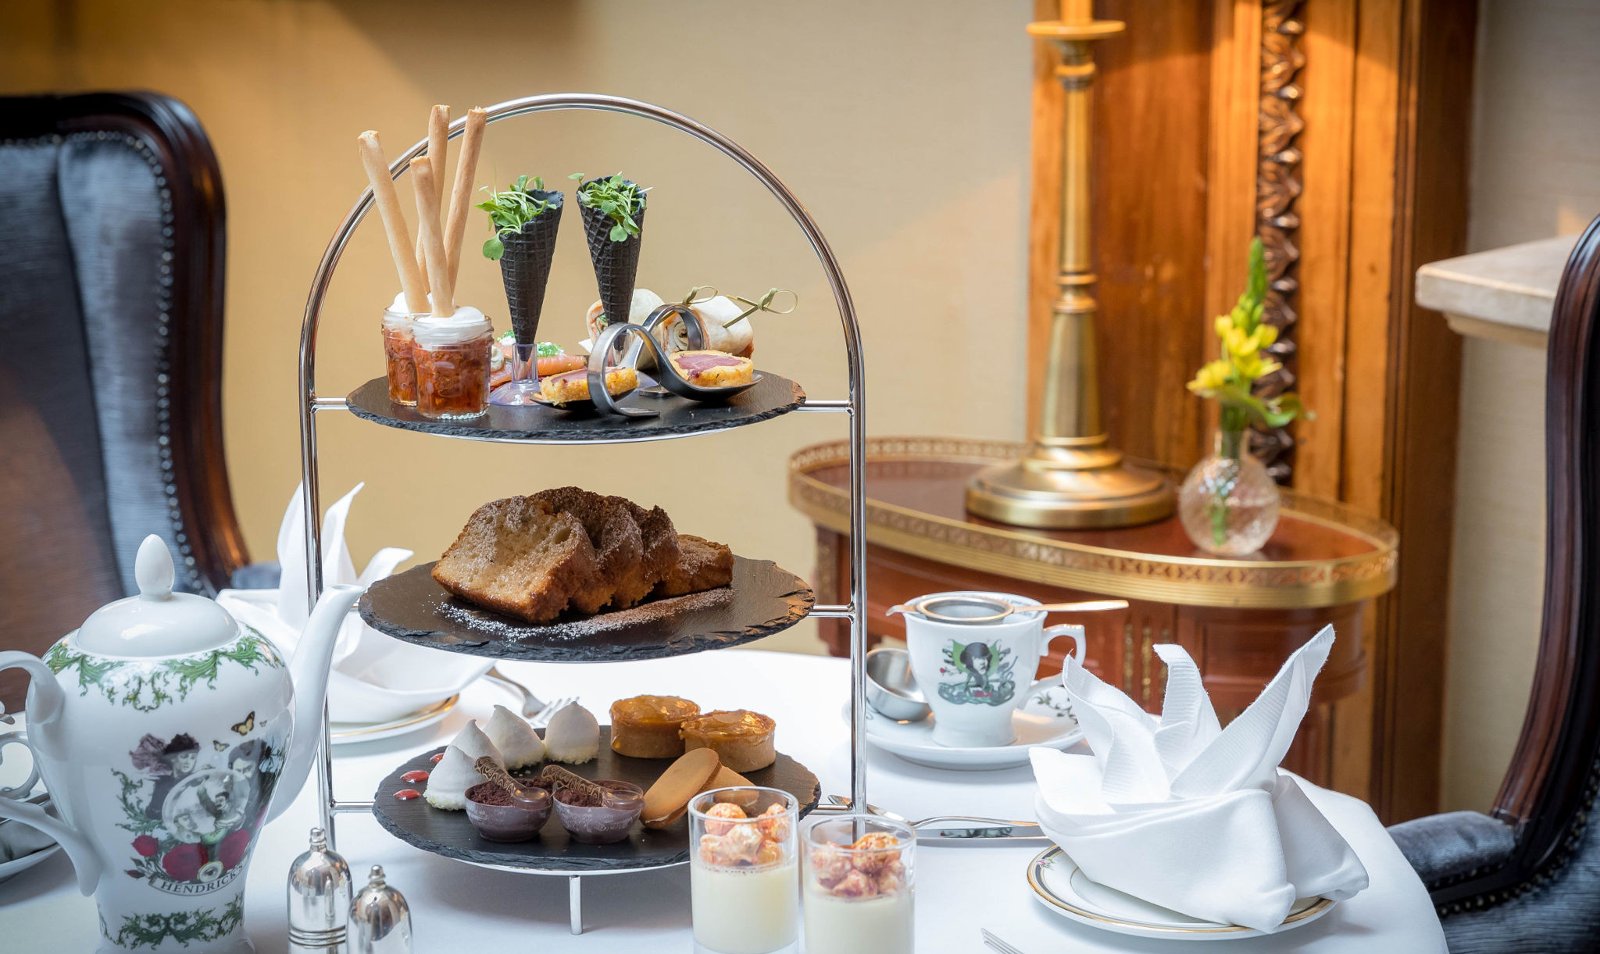 Afternoon Tea at the westin dublin